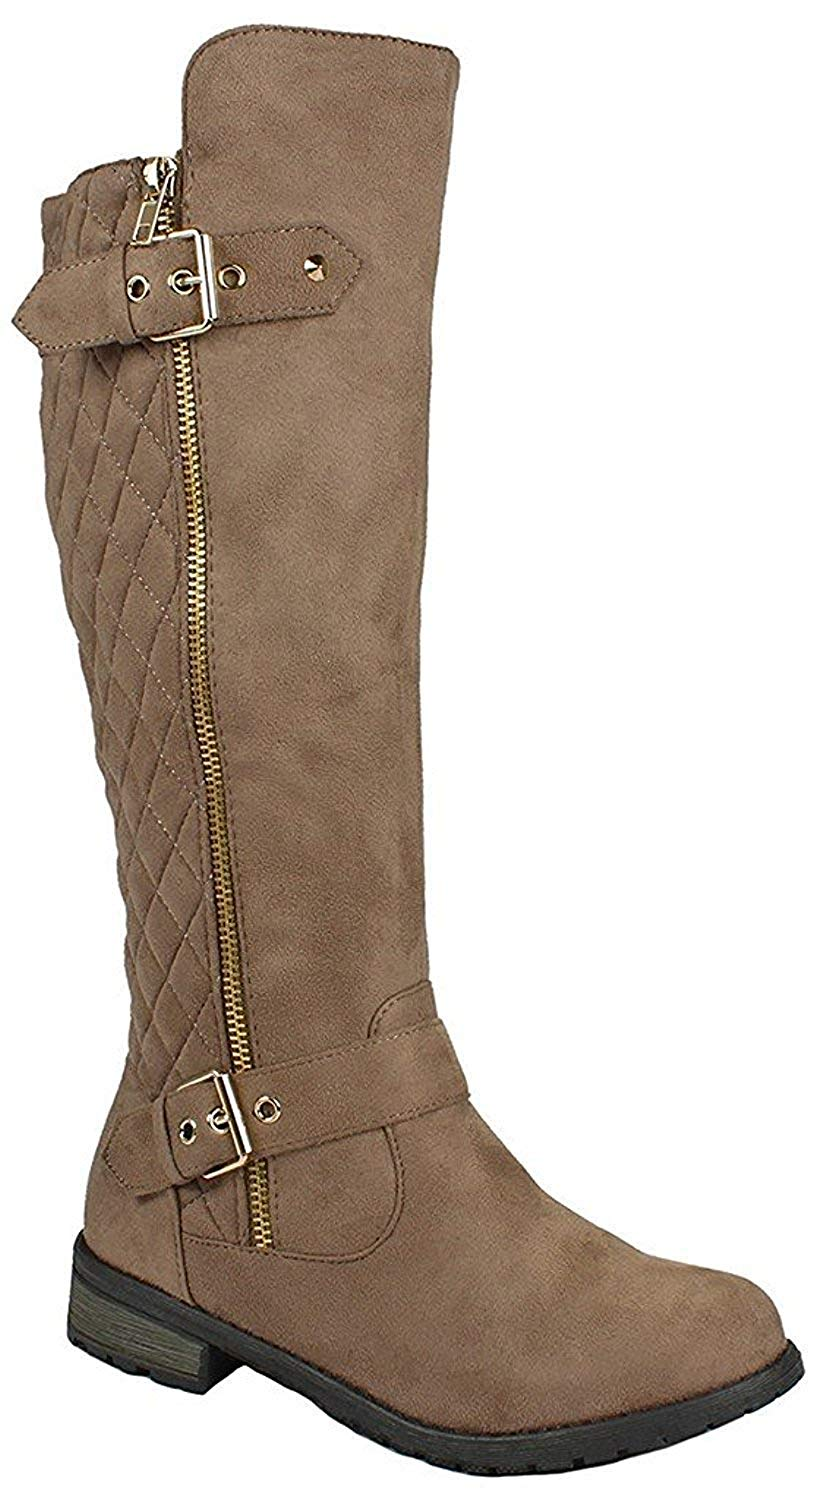 Forever Link Mango-21 Lady Boot, Taupe Nb, Size 6.5 0qPu